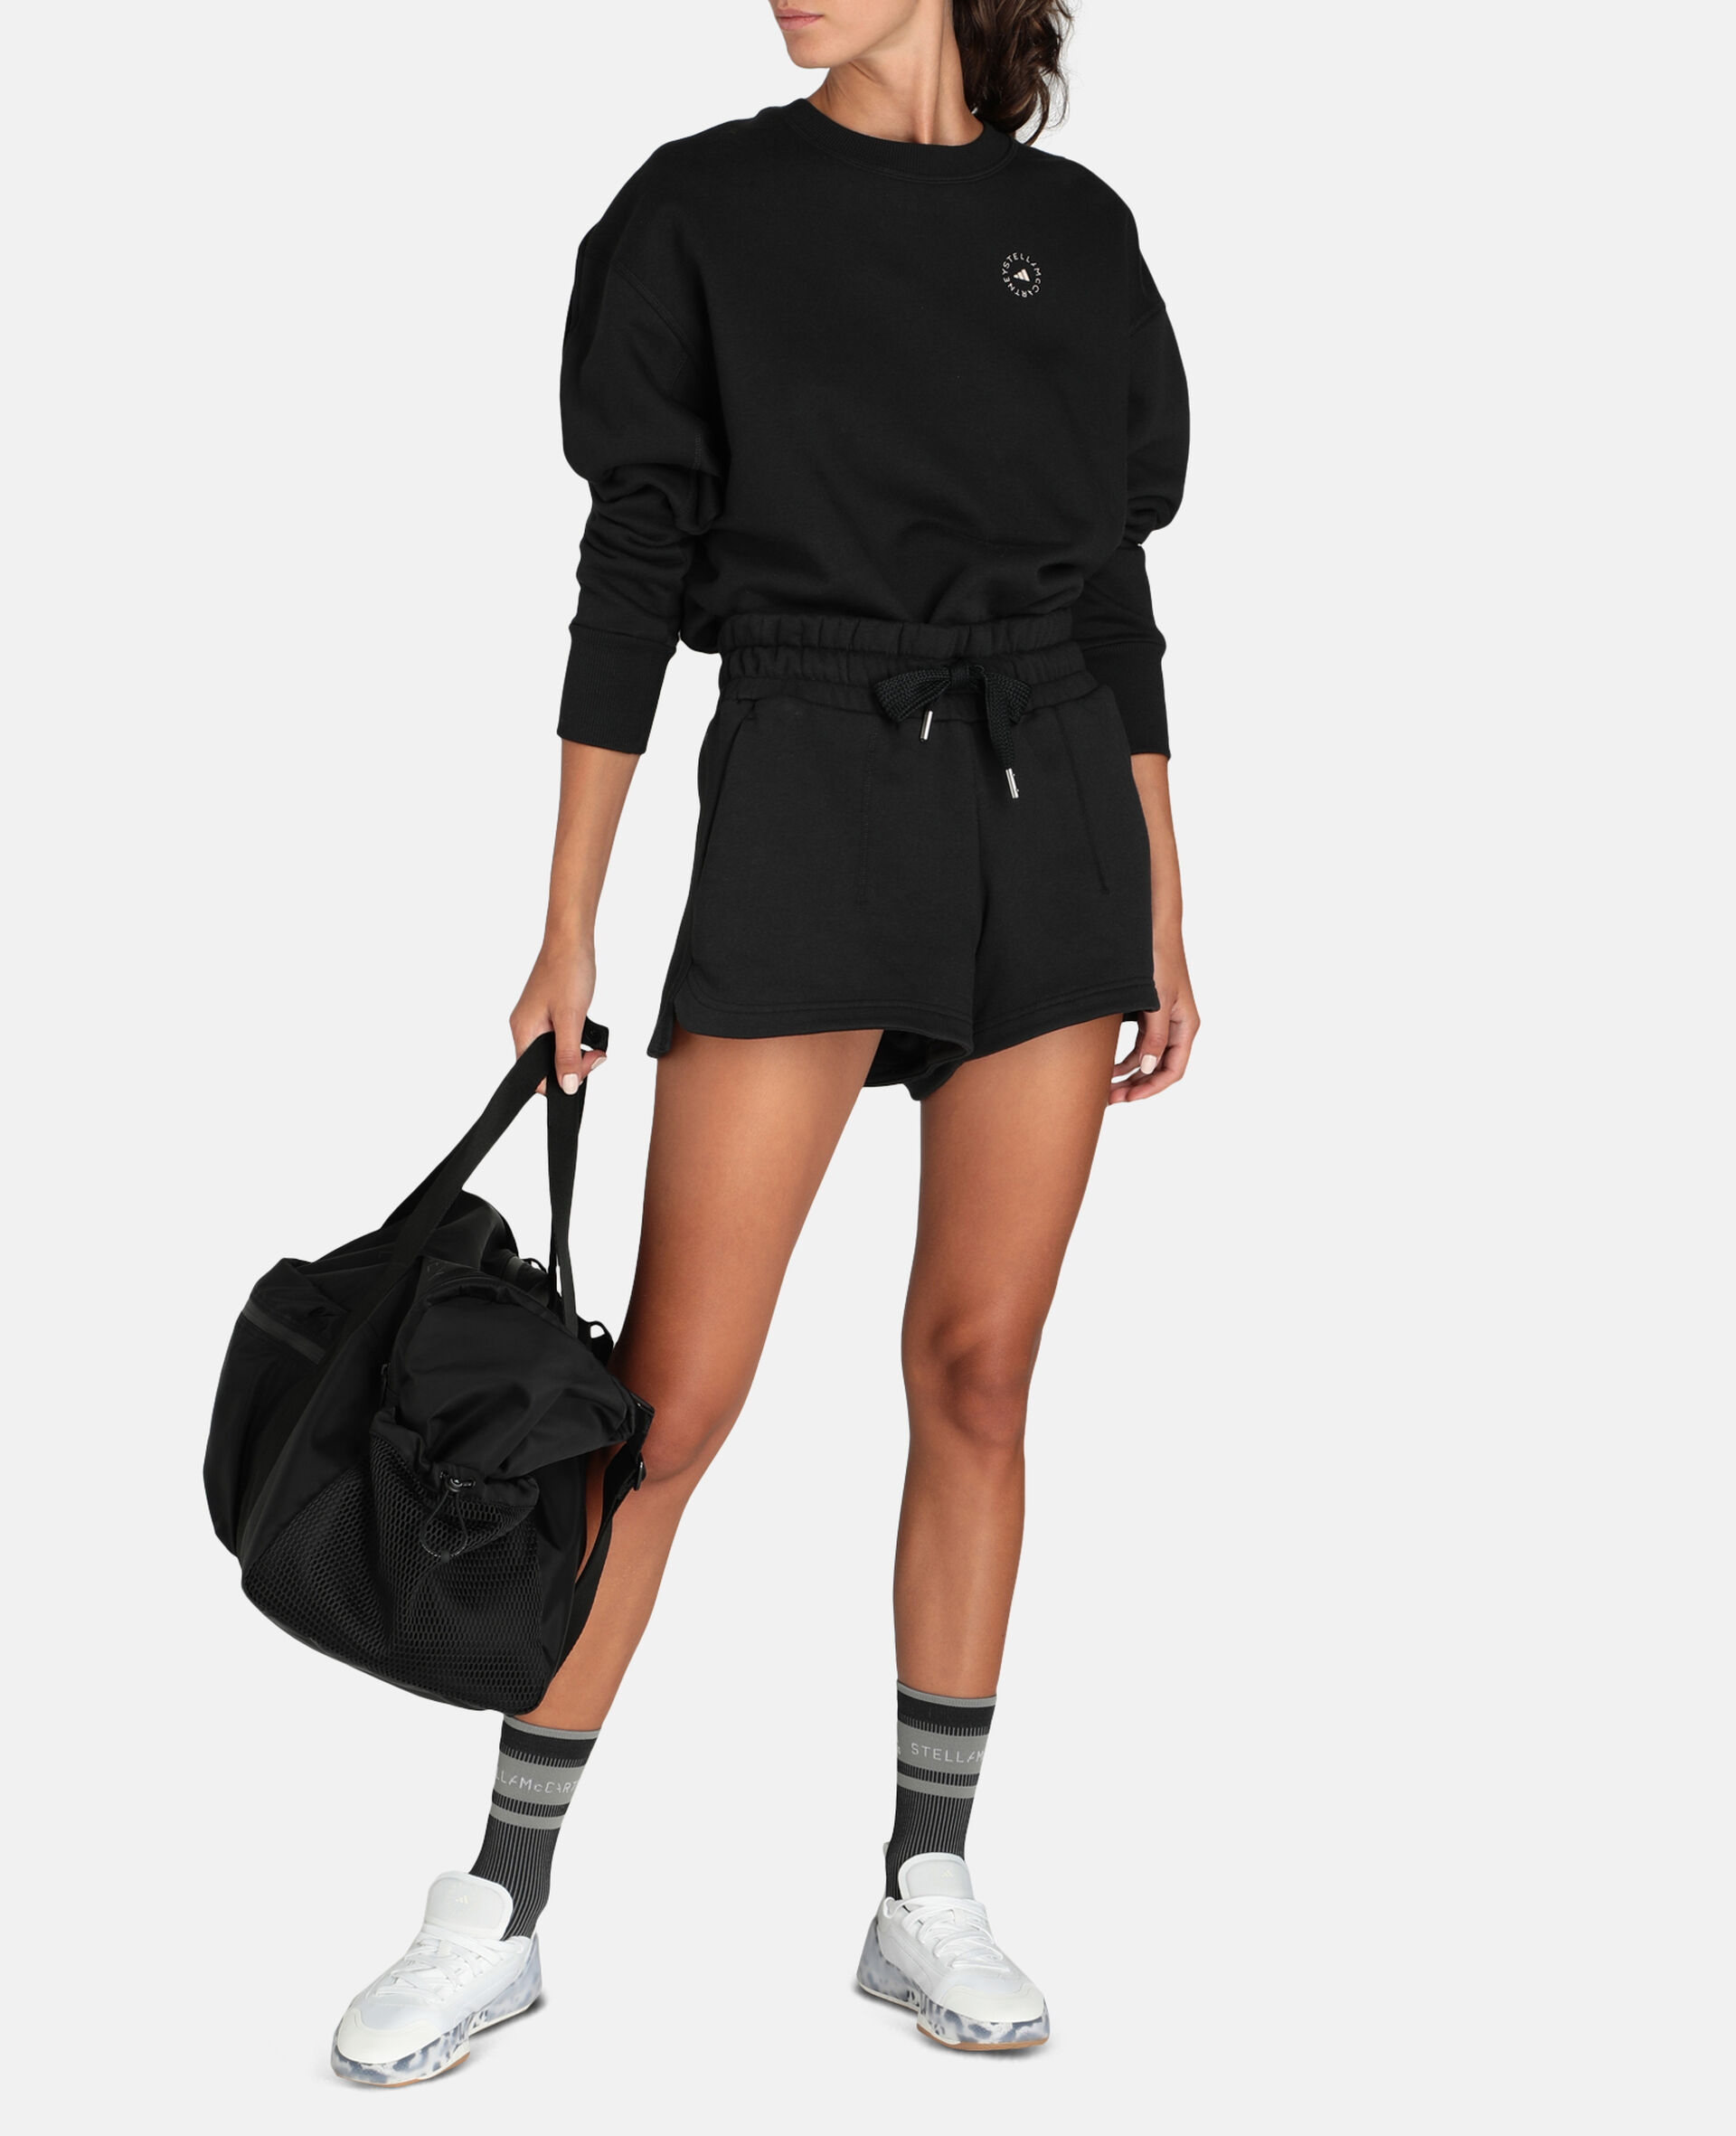 Black Training Sweatshirt-Black-large image number 1